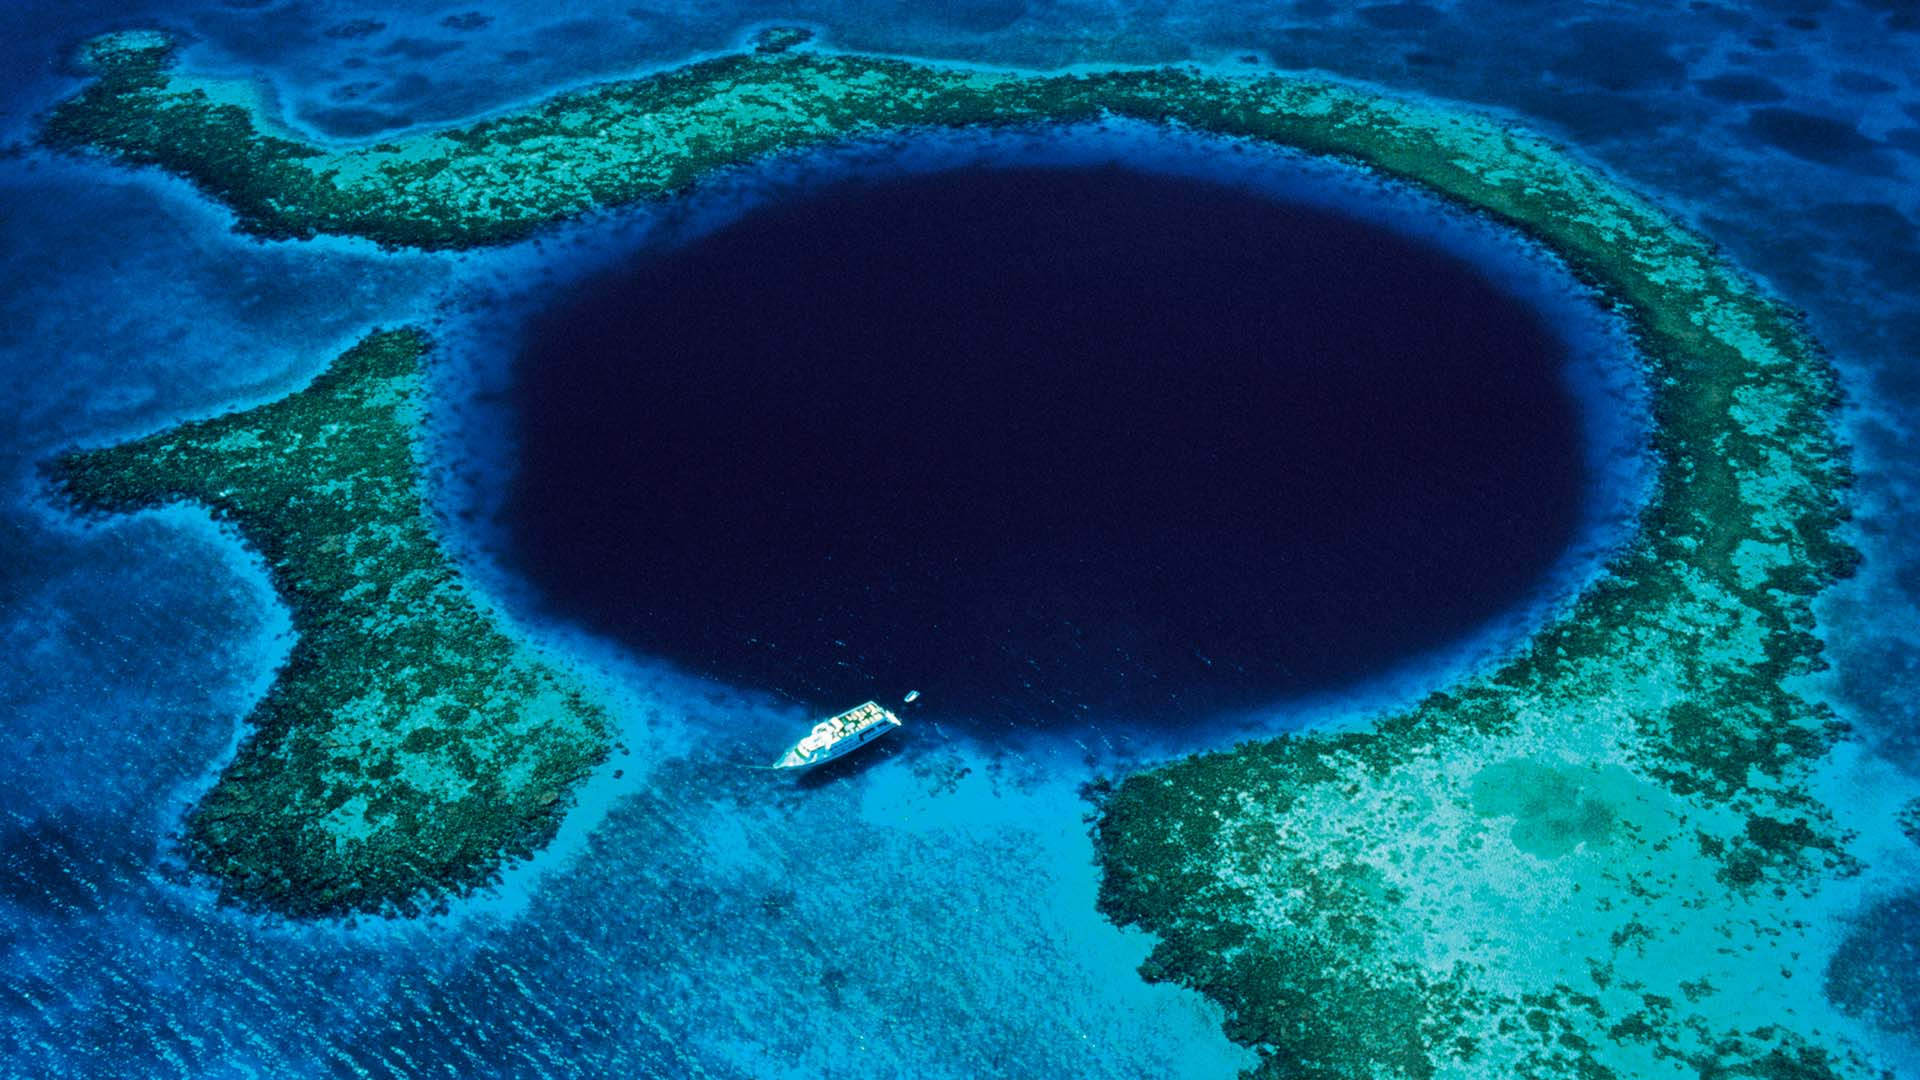 A boat passing over the Great Blue Hole of Belize